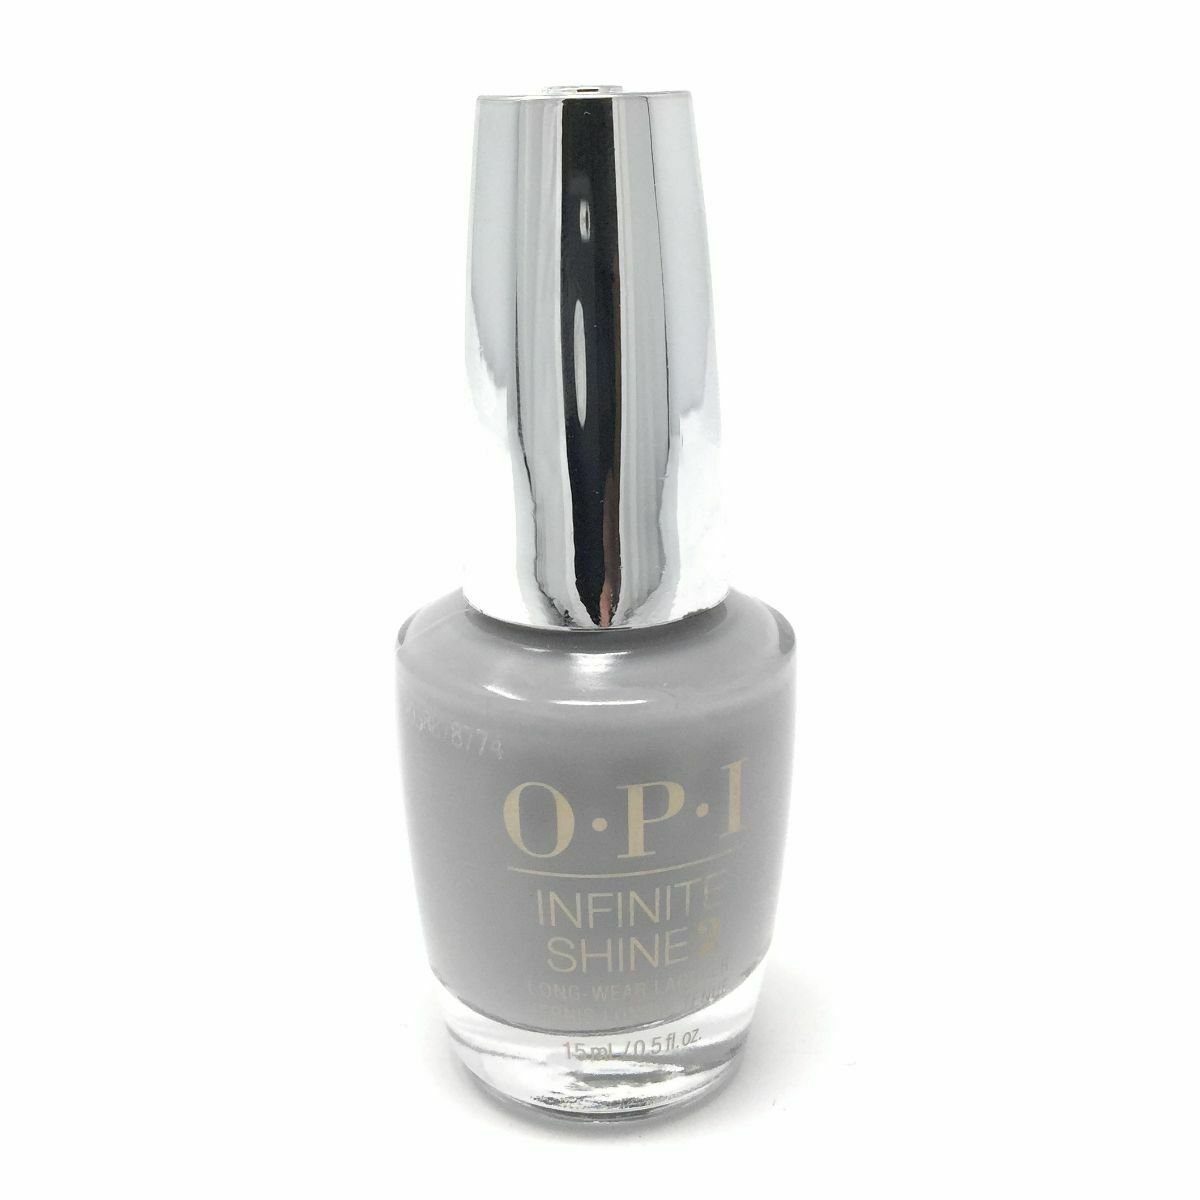 OPI Infinite Shine- Always Bare For You- .5oz- Engage-meant to Be, ISLSH5